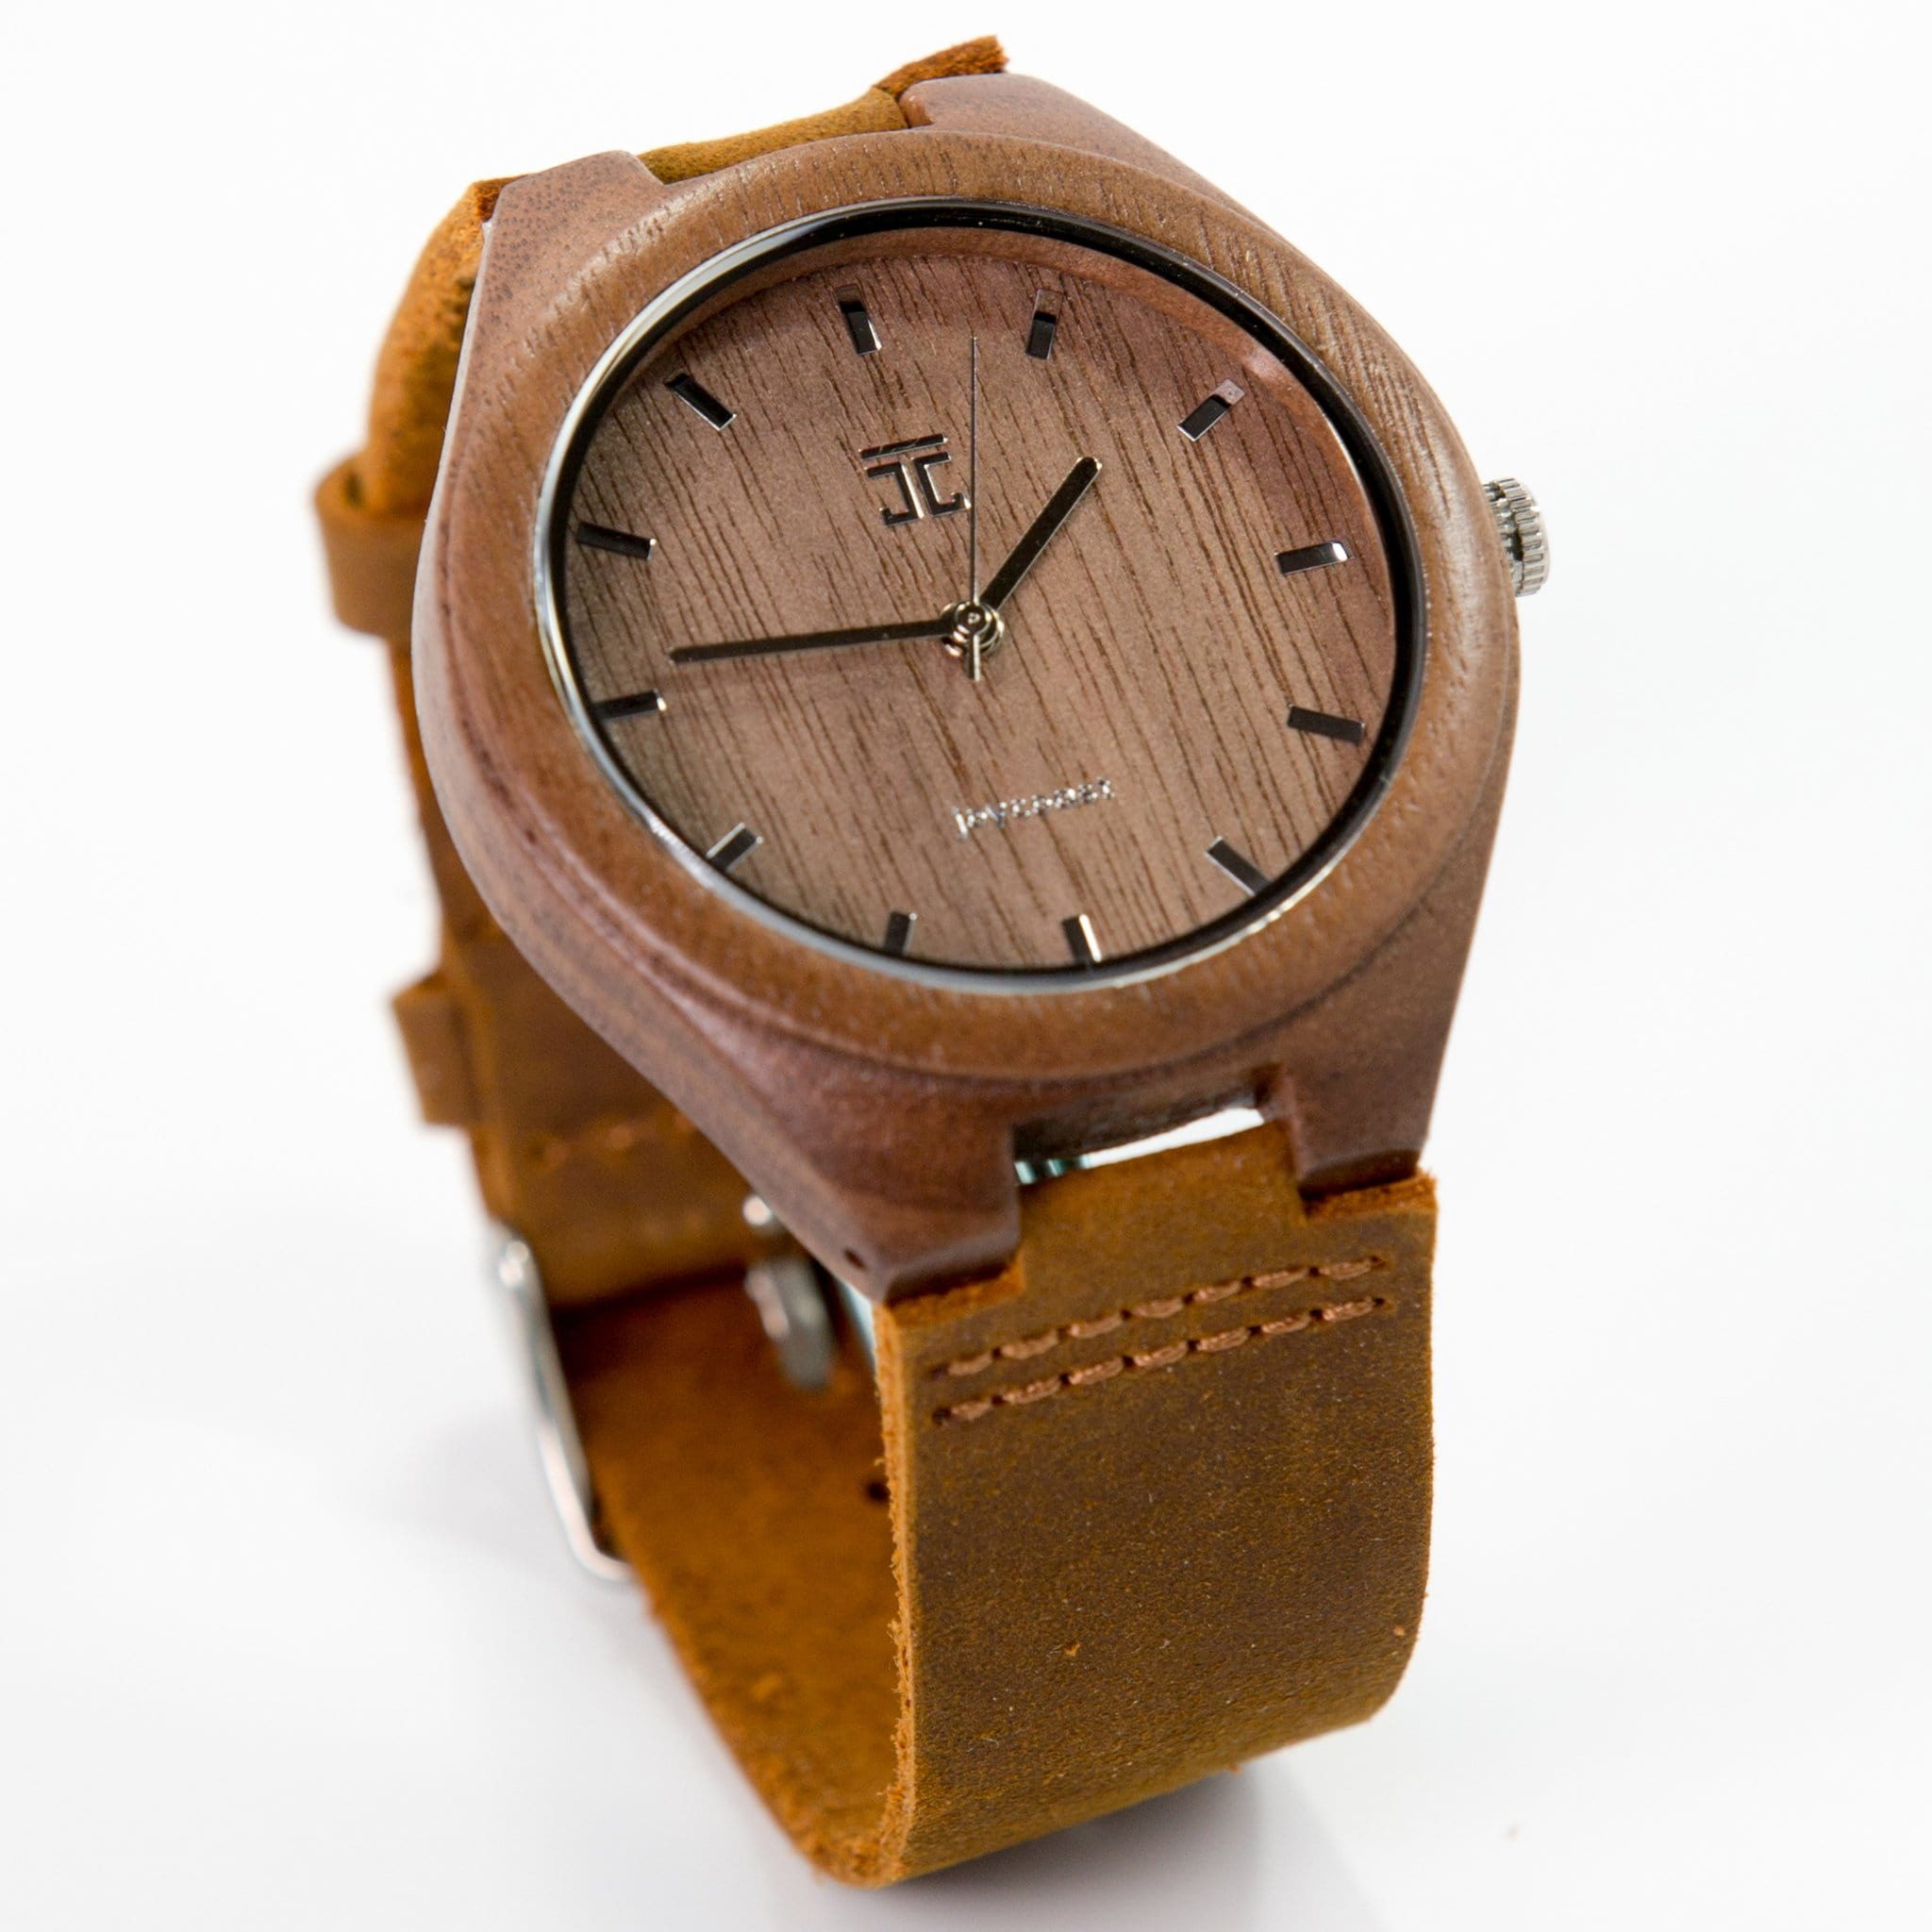 Wooden Watch | Walnut with Genuine Leather Strap - Wooden Watches and Sunglasses - Joycoast